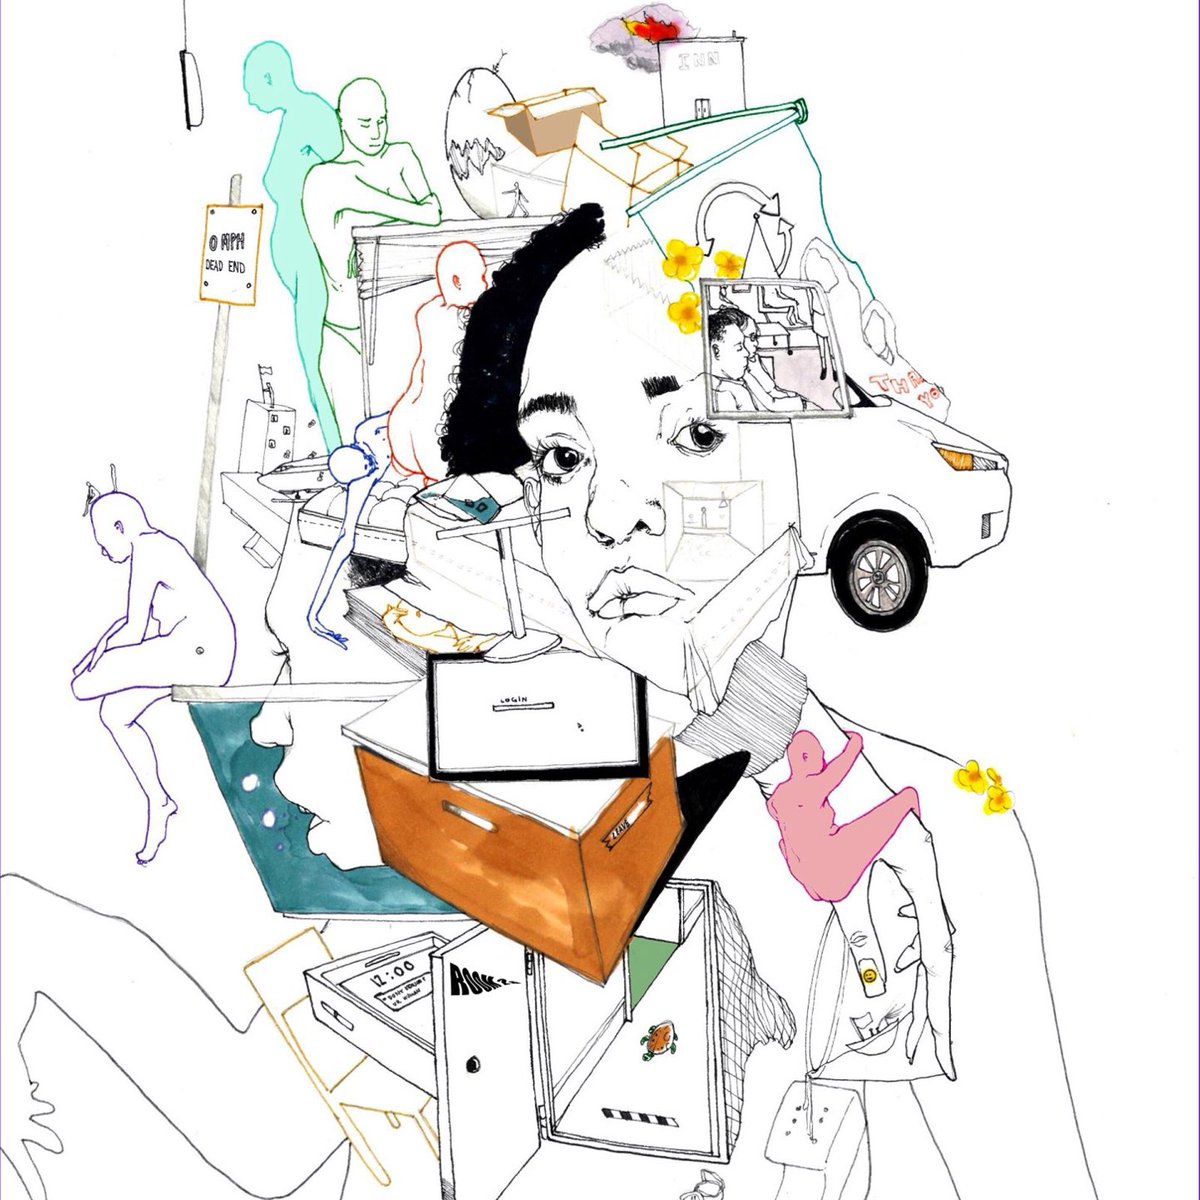 """Noname Room 25 Album Review - """"One more cypher, then I'm callin' it quits,"""" Noname proclaimed in 2013. But five years and two albums later, she's back with an album that has named her """"one of the best rappers alive"""".by Sasha Jones"""